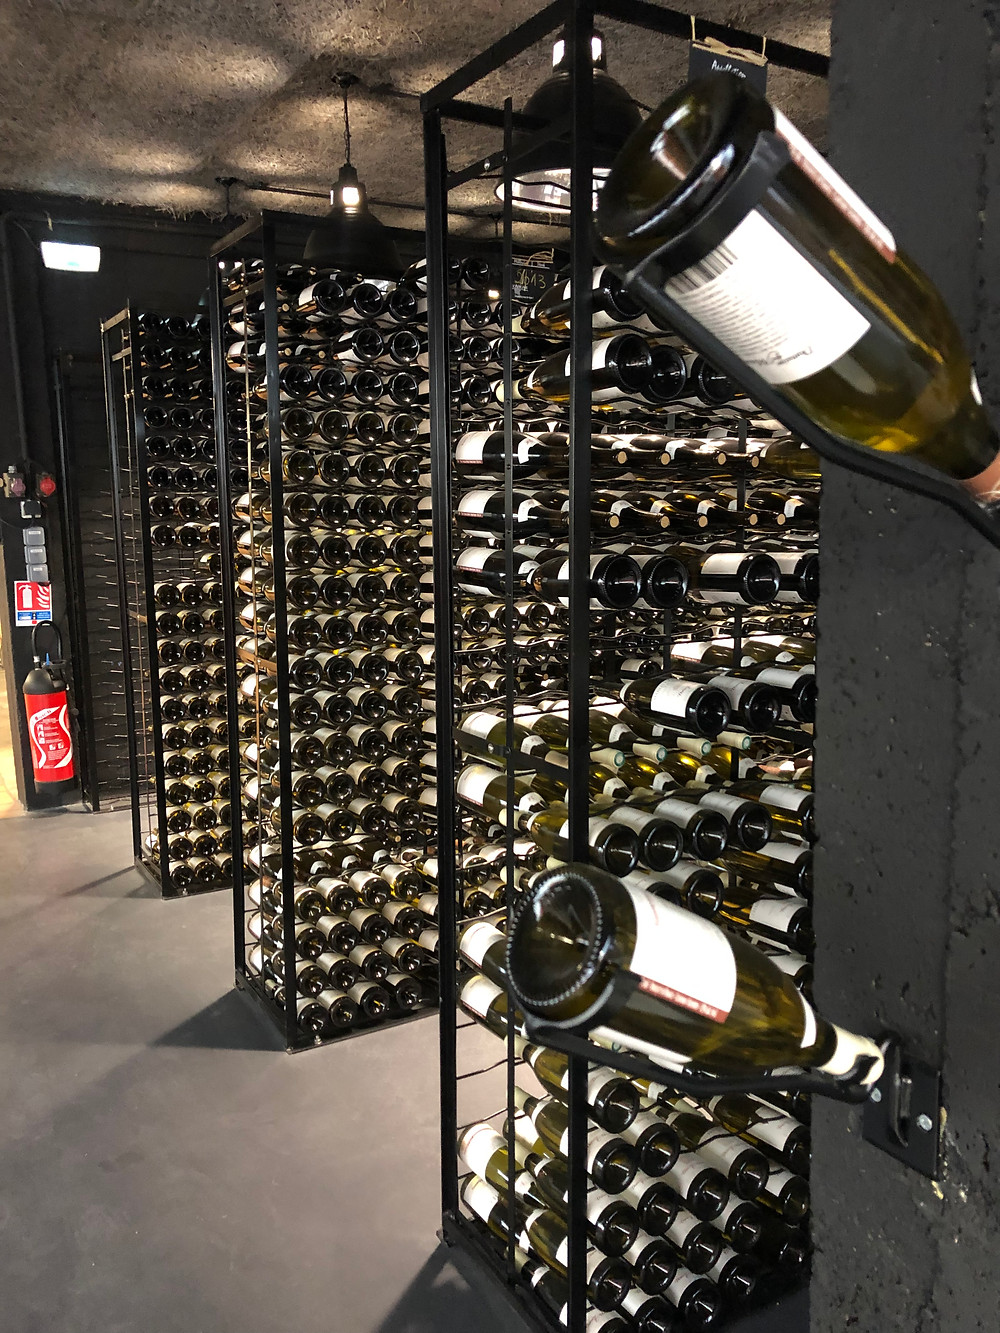 wine racks in a Chablis wine cellar at Domaines des Malandes in Chablis village in Burgundy